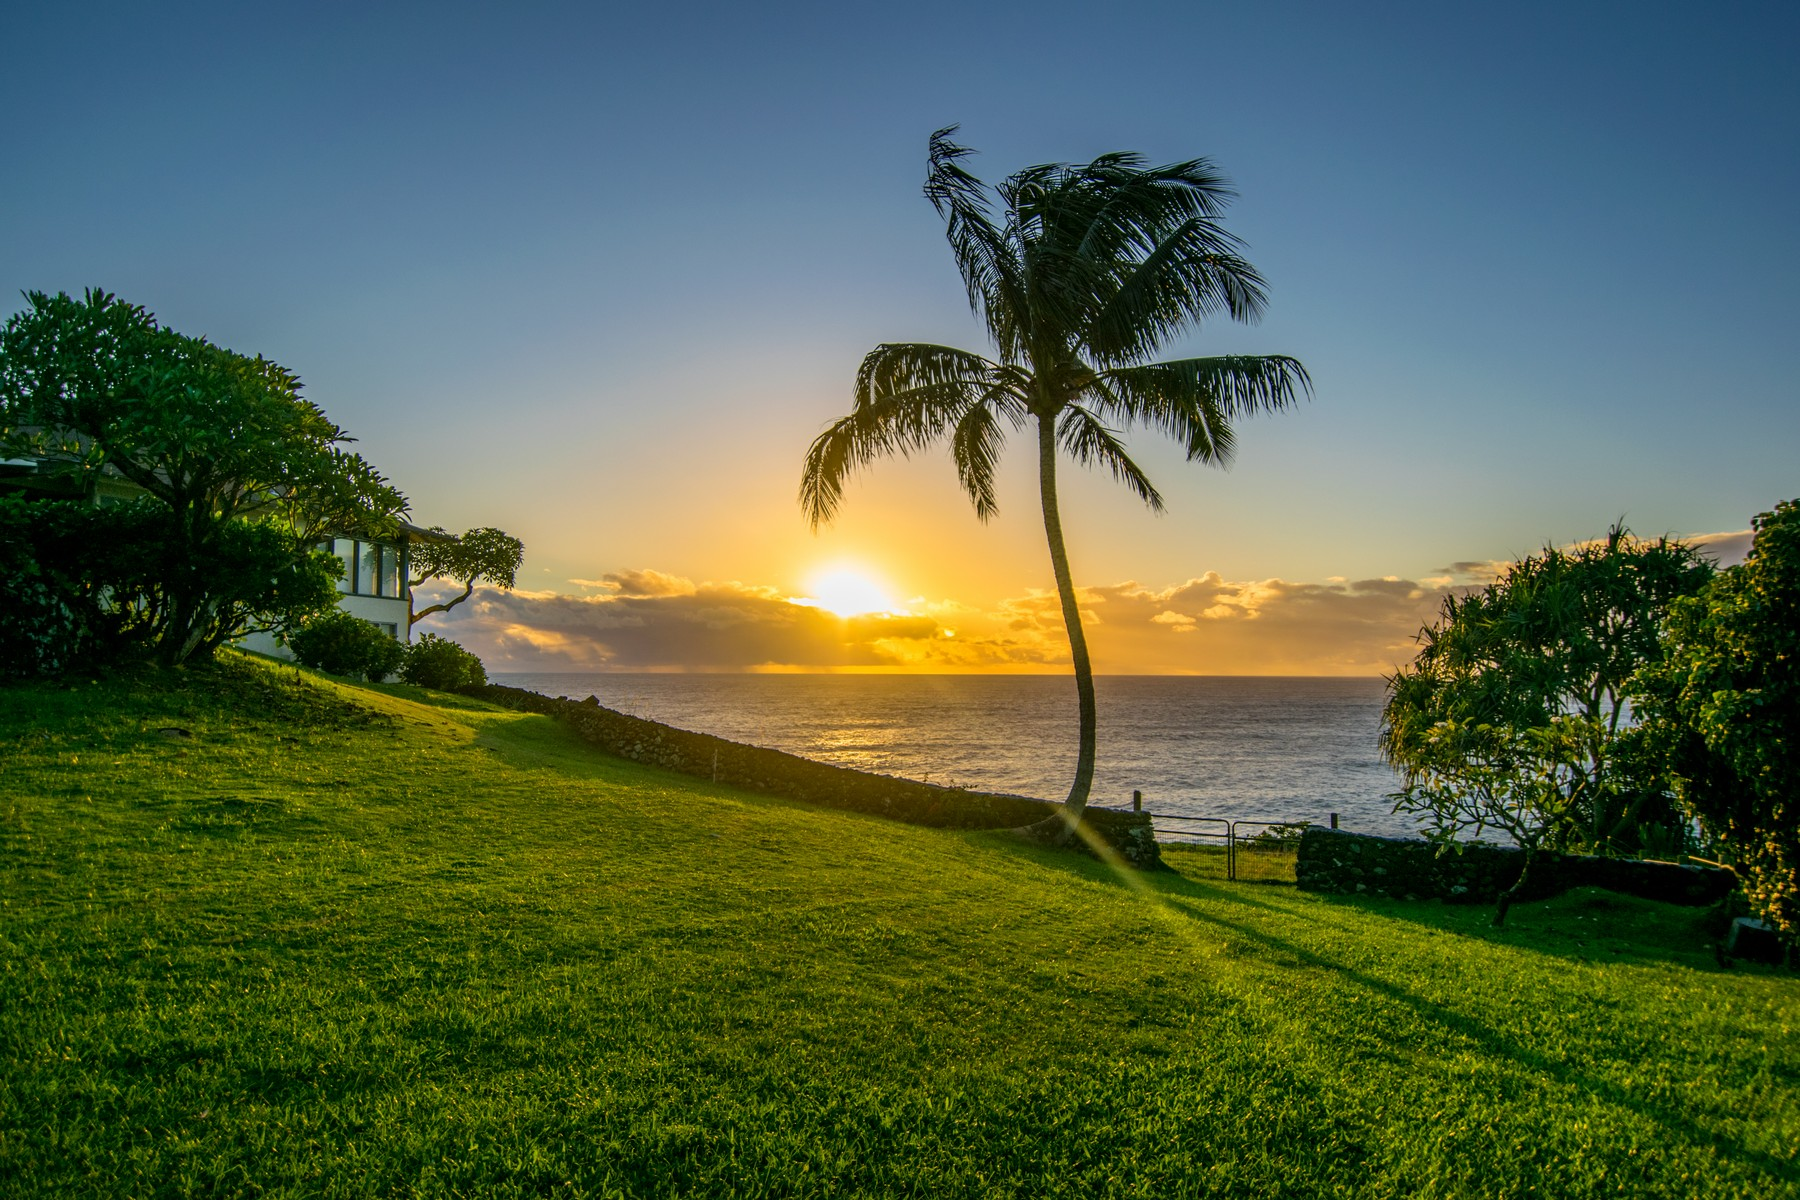 Property For Sale at Splendid Hana Maui - 2.29 Acres, Steps to the Ocean!